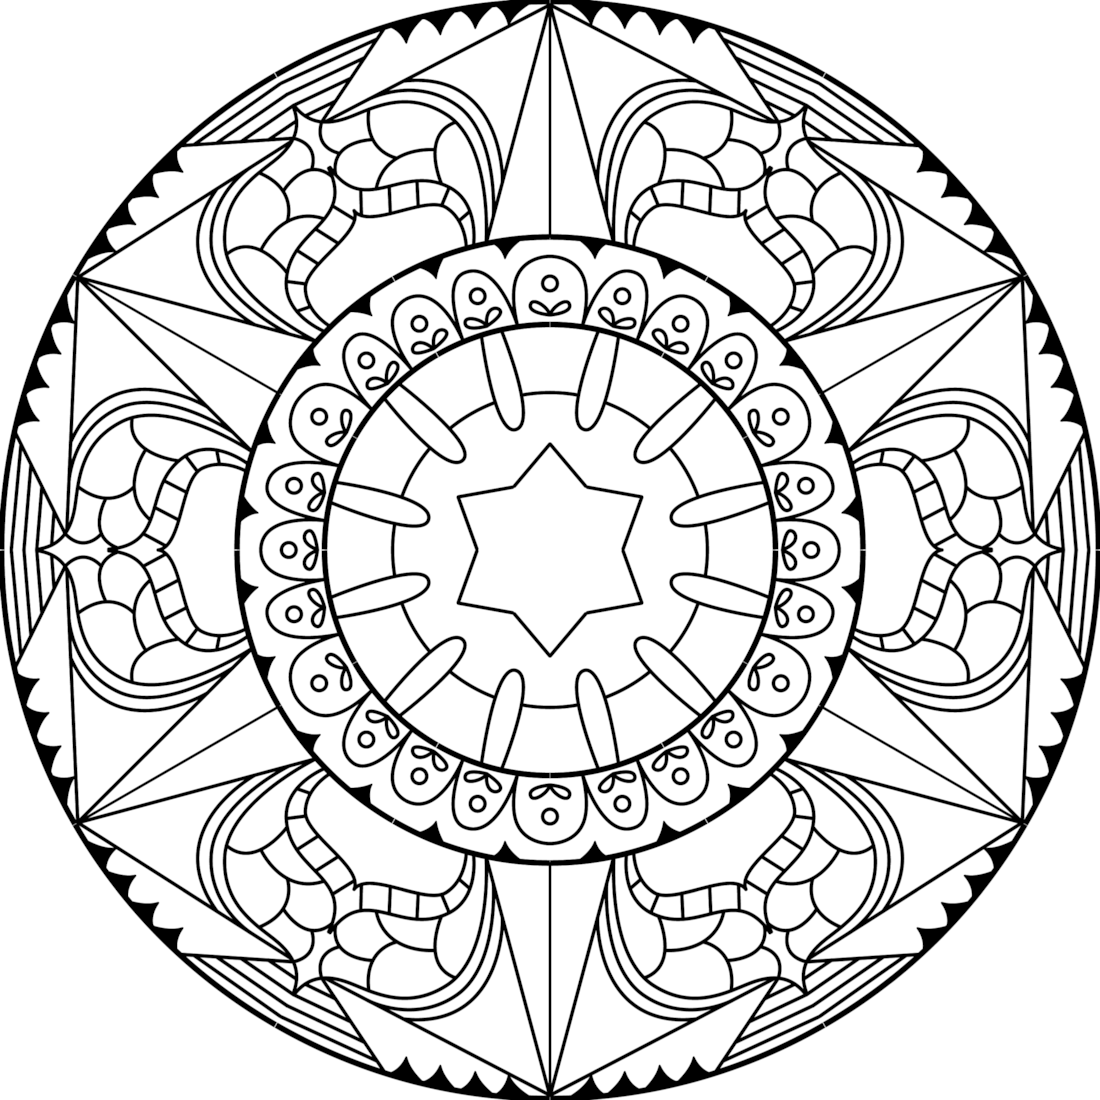 Picture of Badge of Honor coloring page